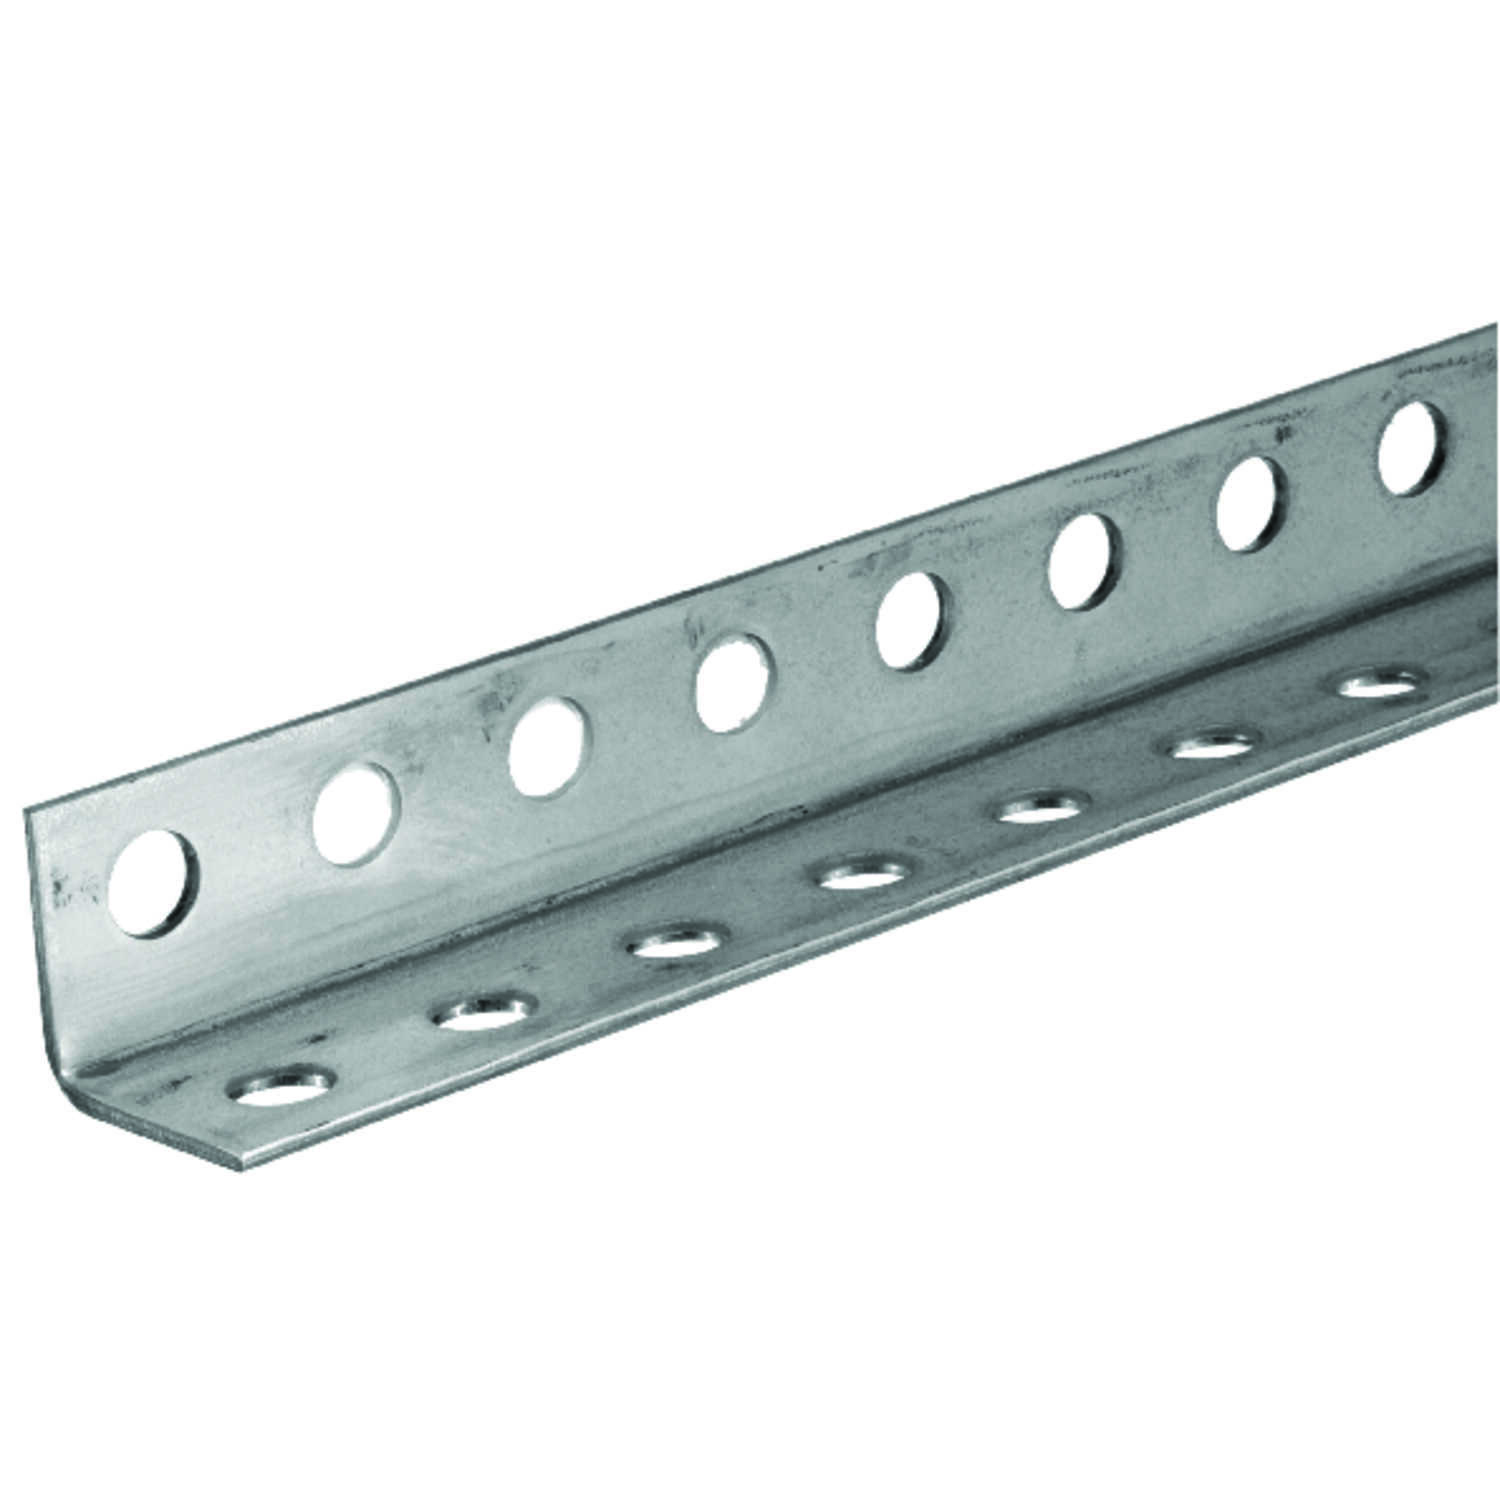 Boltmaster  1.25 in. H x 1.25 in. H x 1-1/4 in. W x 36 in. L Steel  Perforated Angle